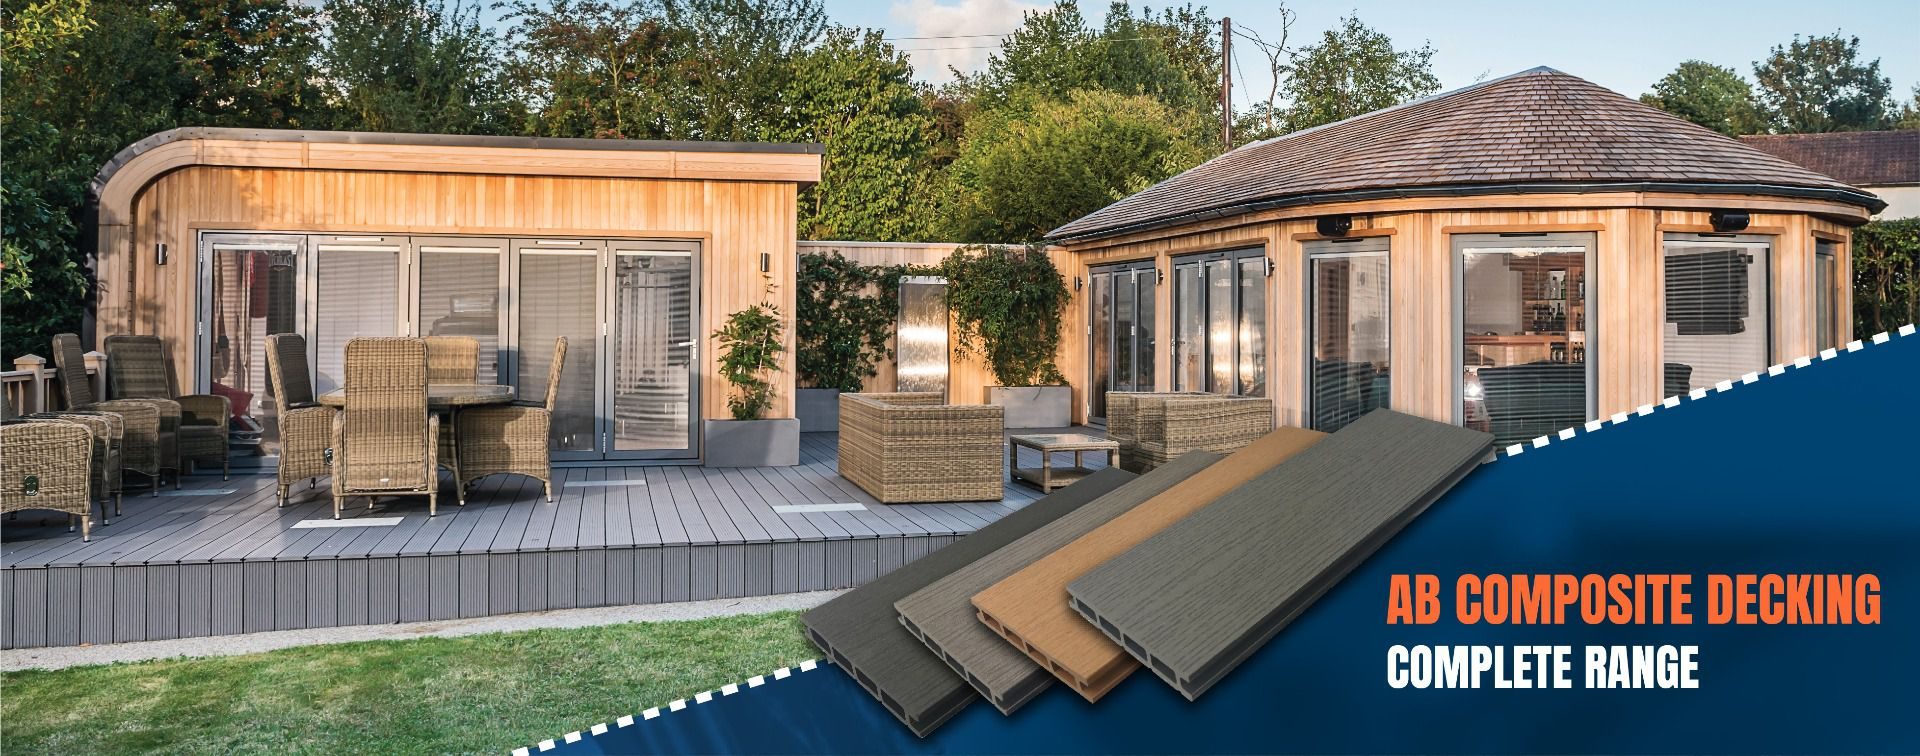 AB Building Products Composite Decking Range